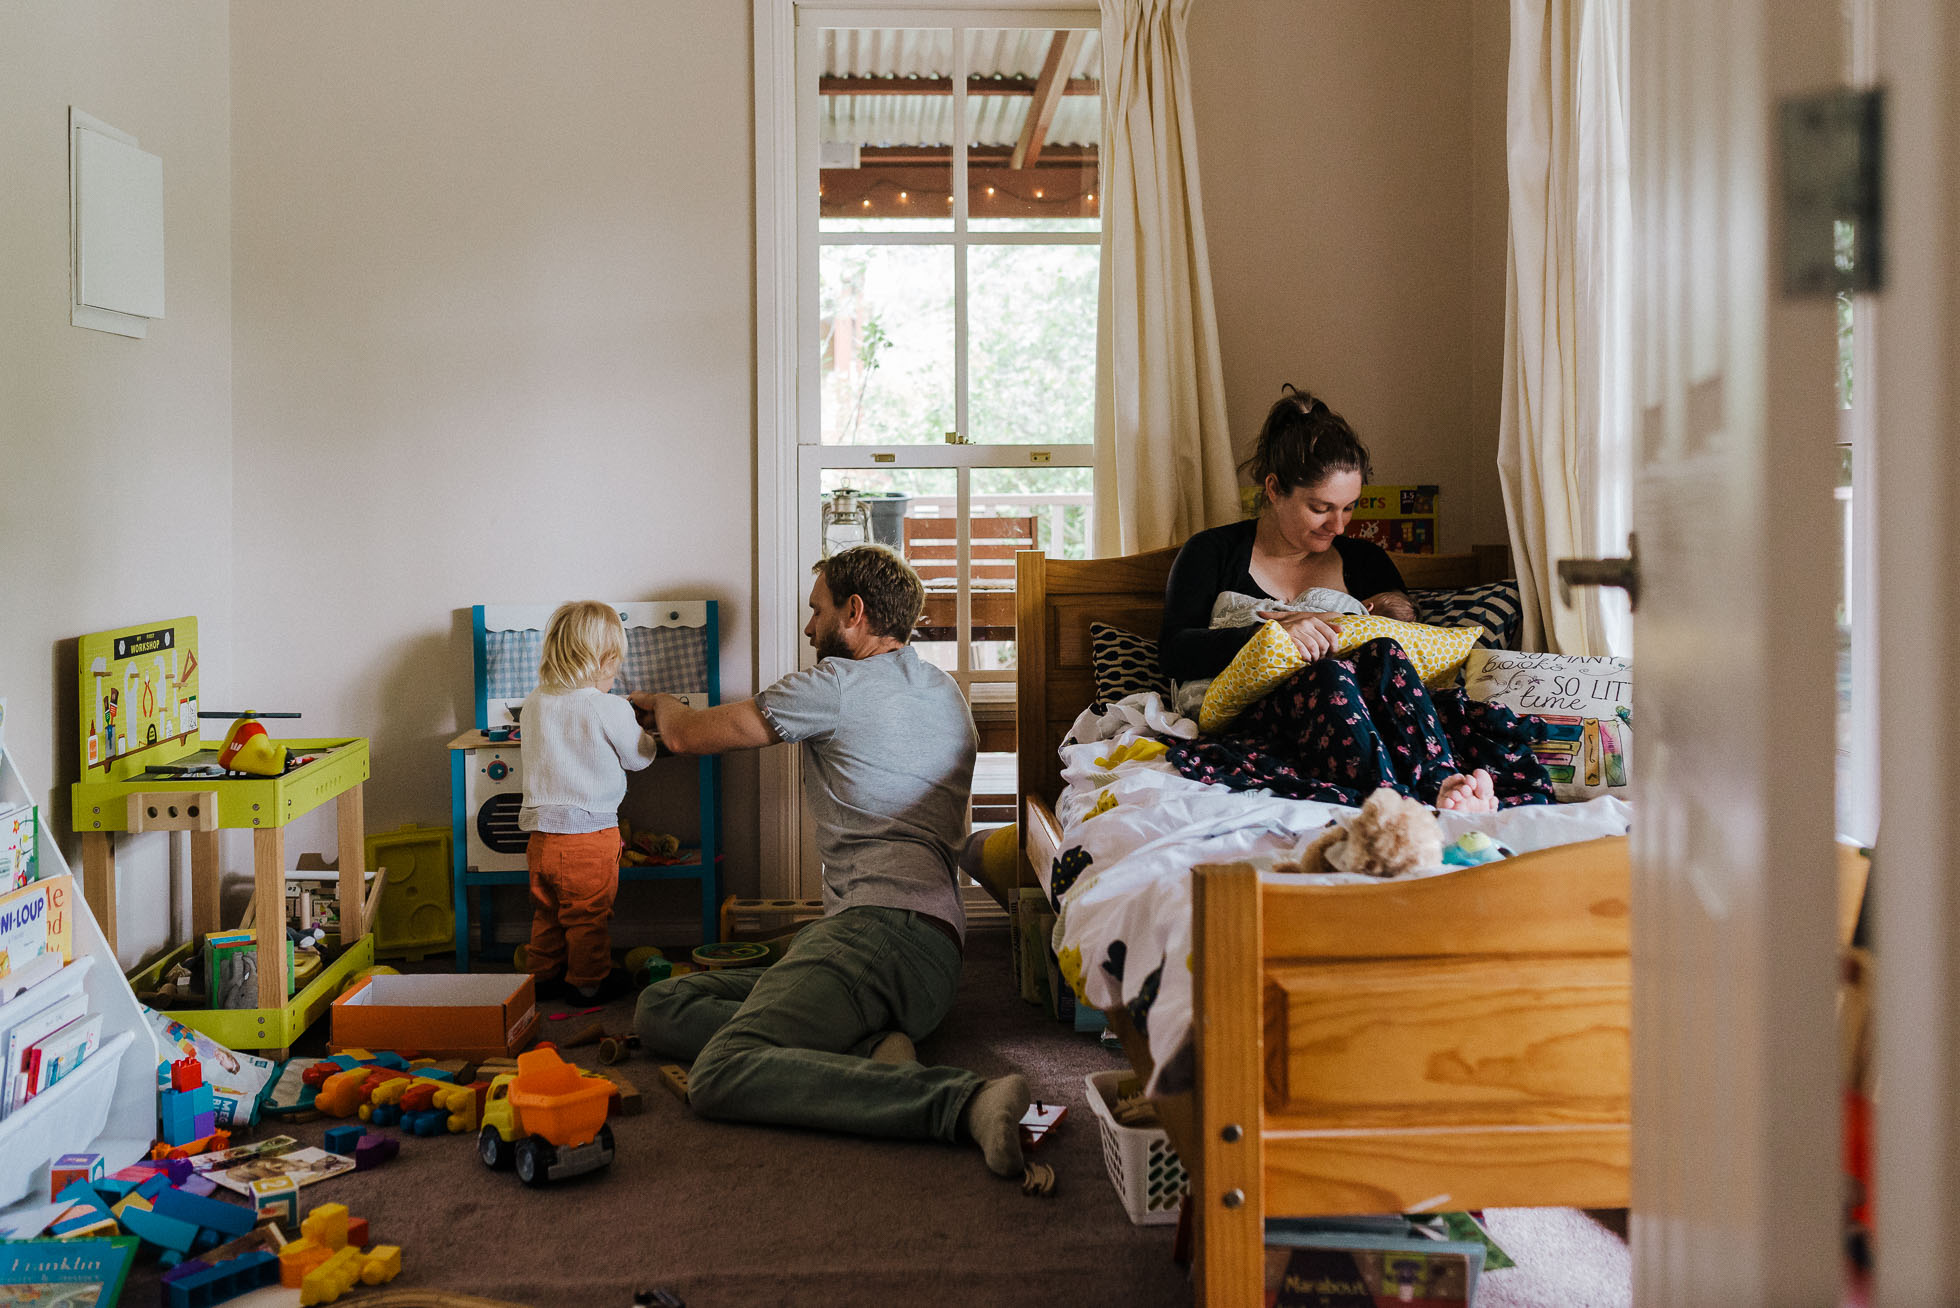 melbourne-family-photographer-family-playing-together-in-child's-bedroom.jpg